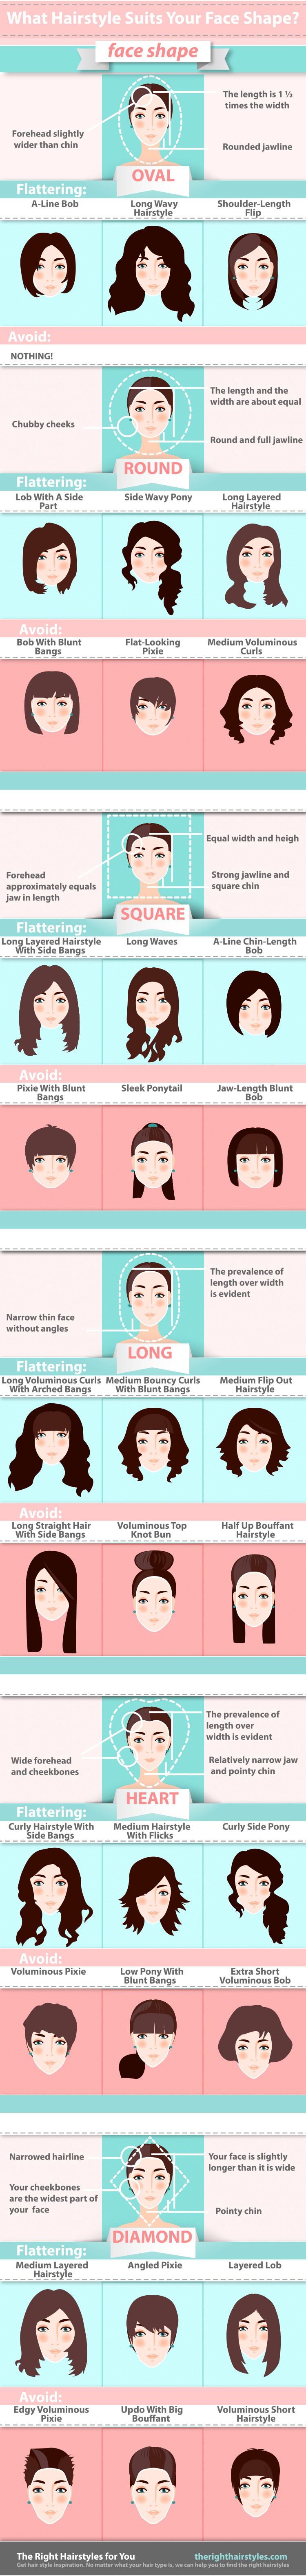 choose new hair style